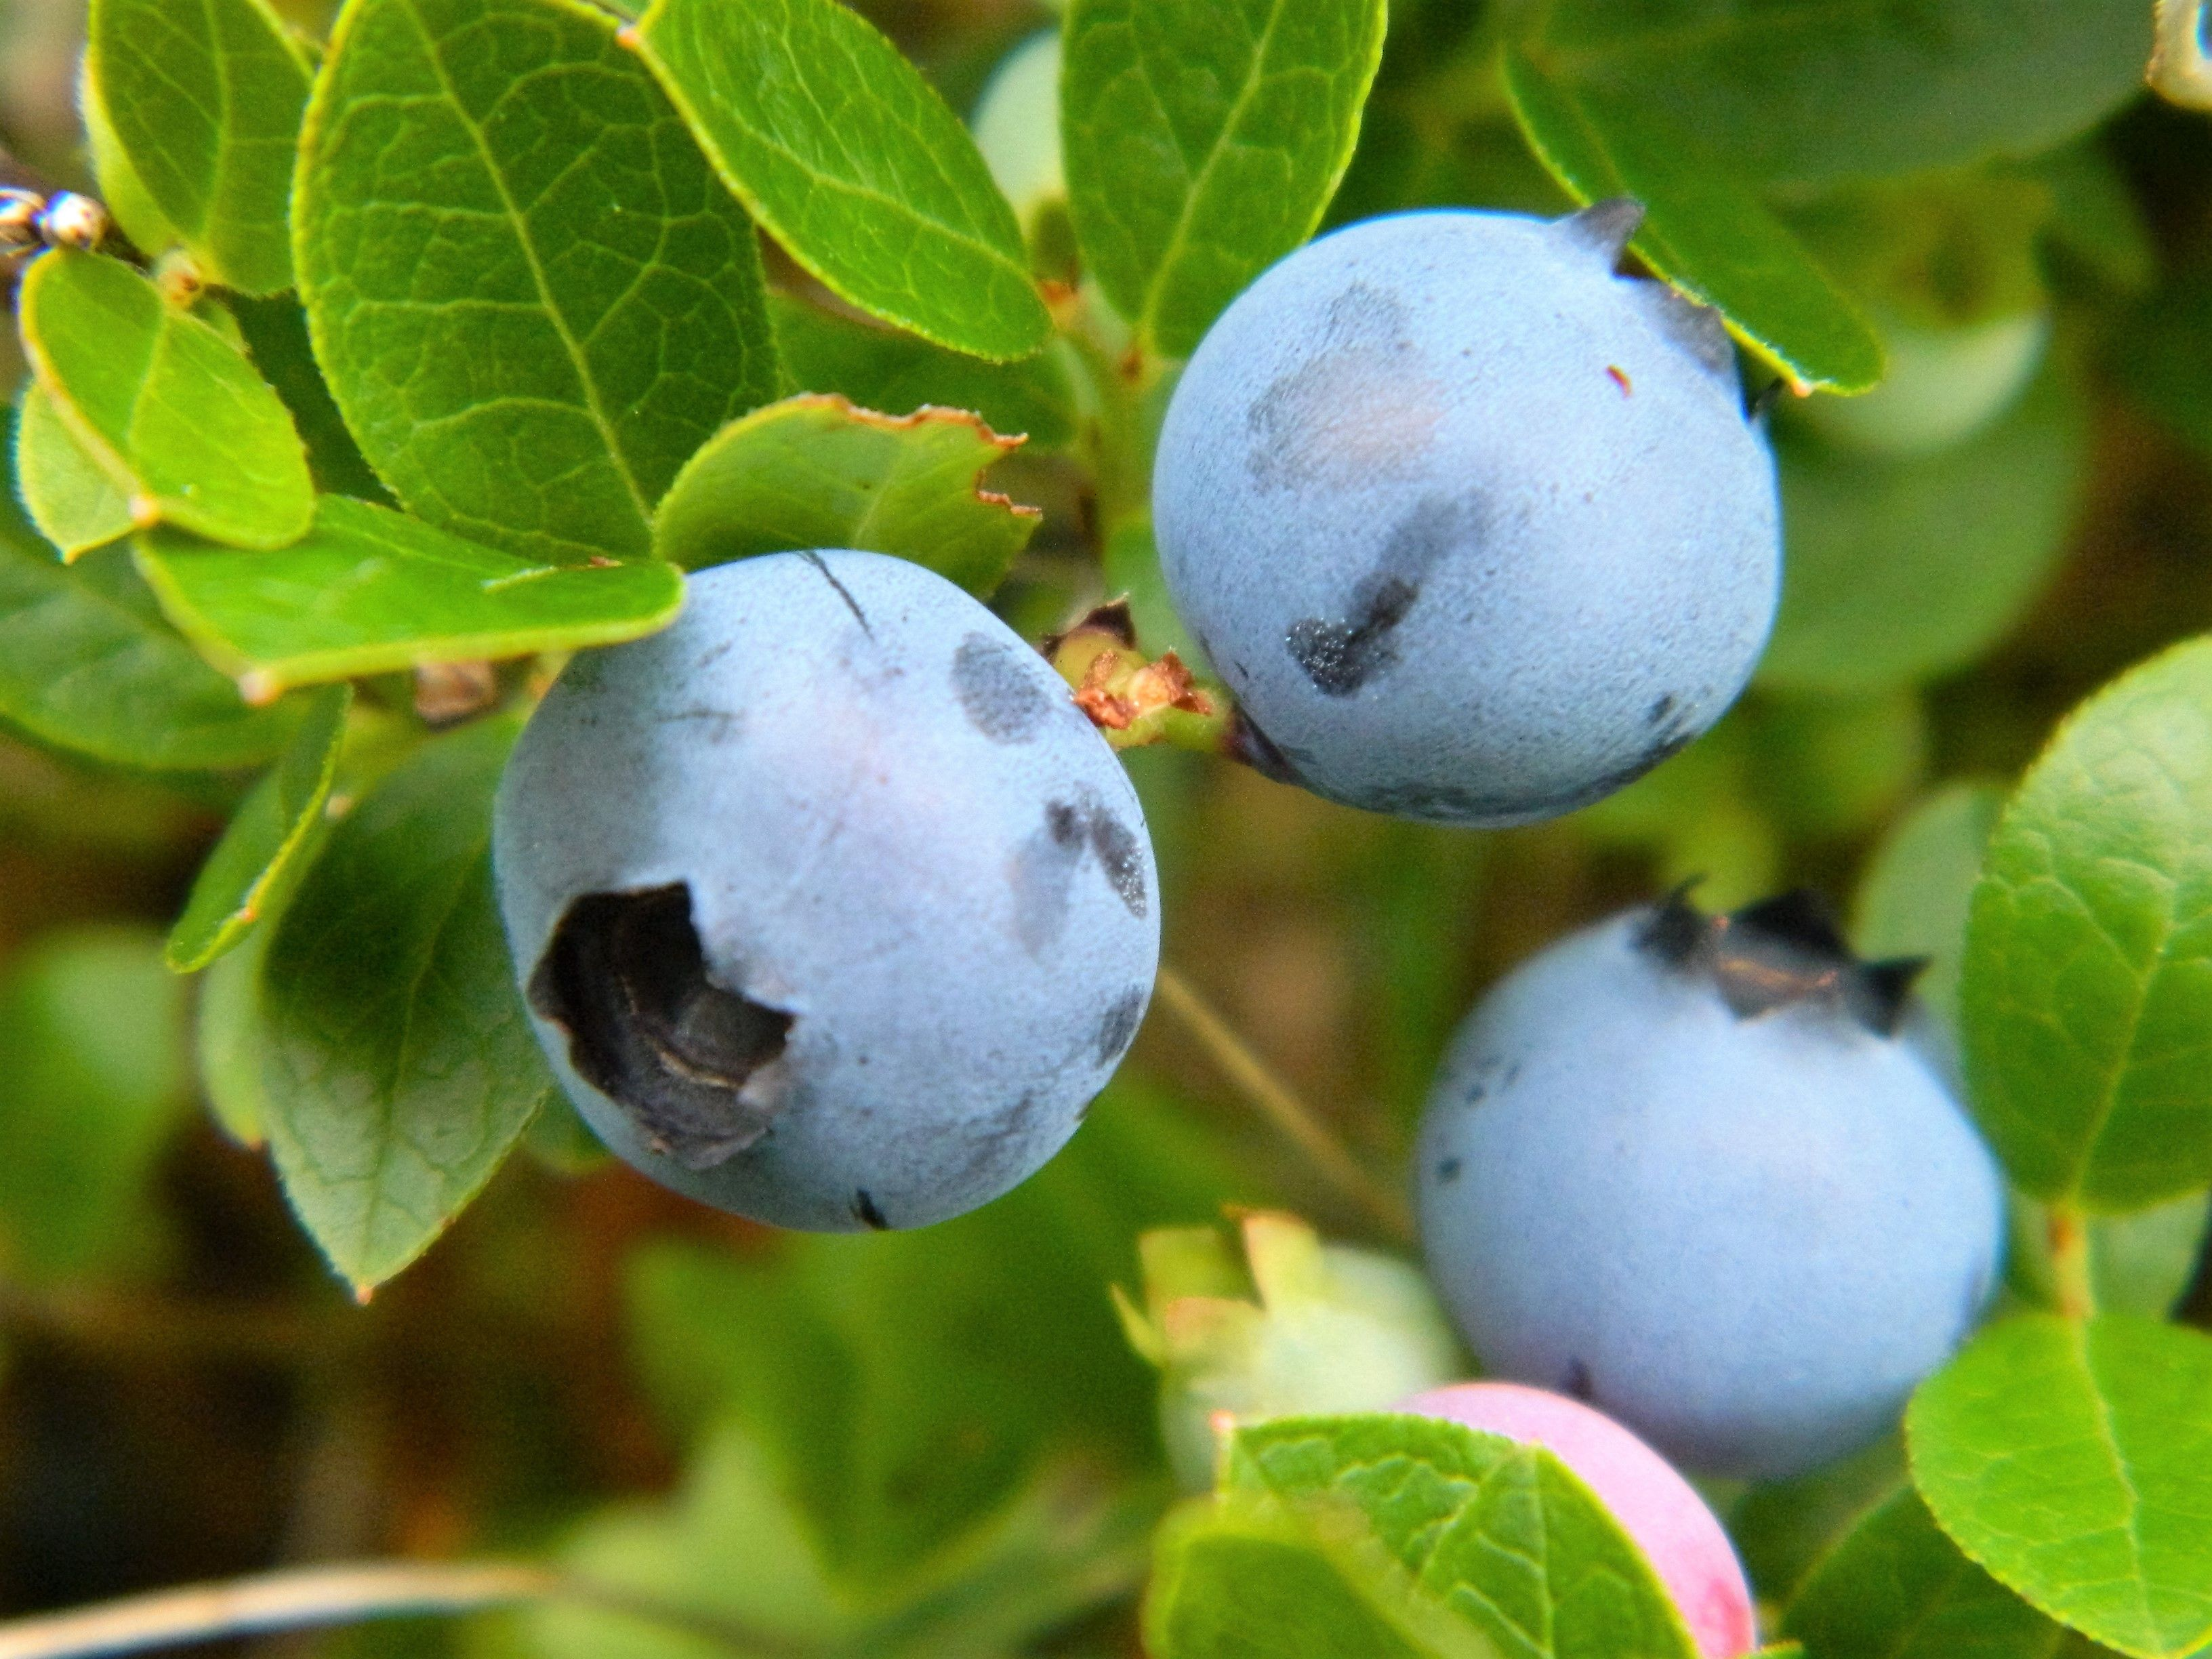 Blueberries in the wild